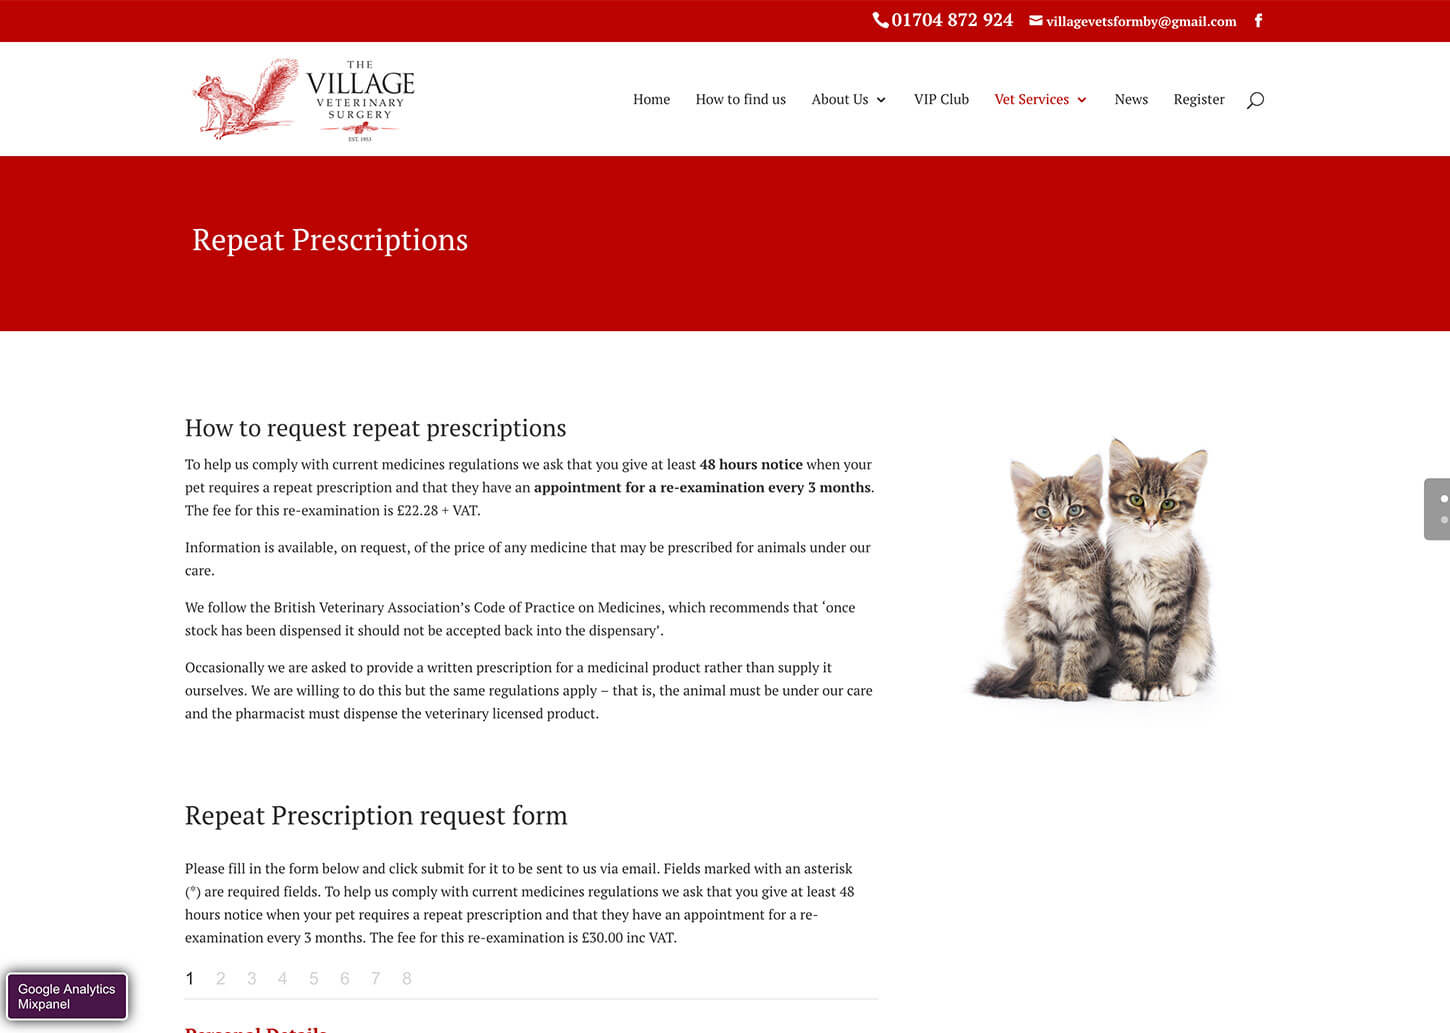 Village Vets website design: Repeat prescriptions page